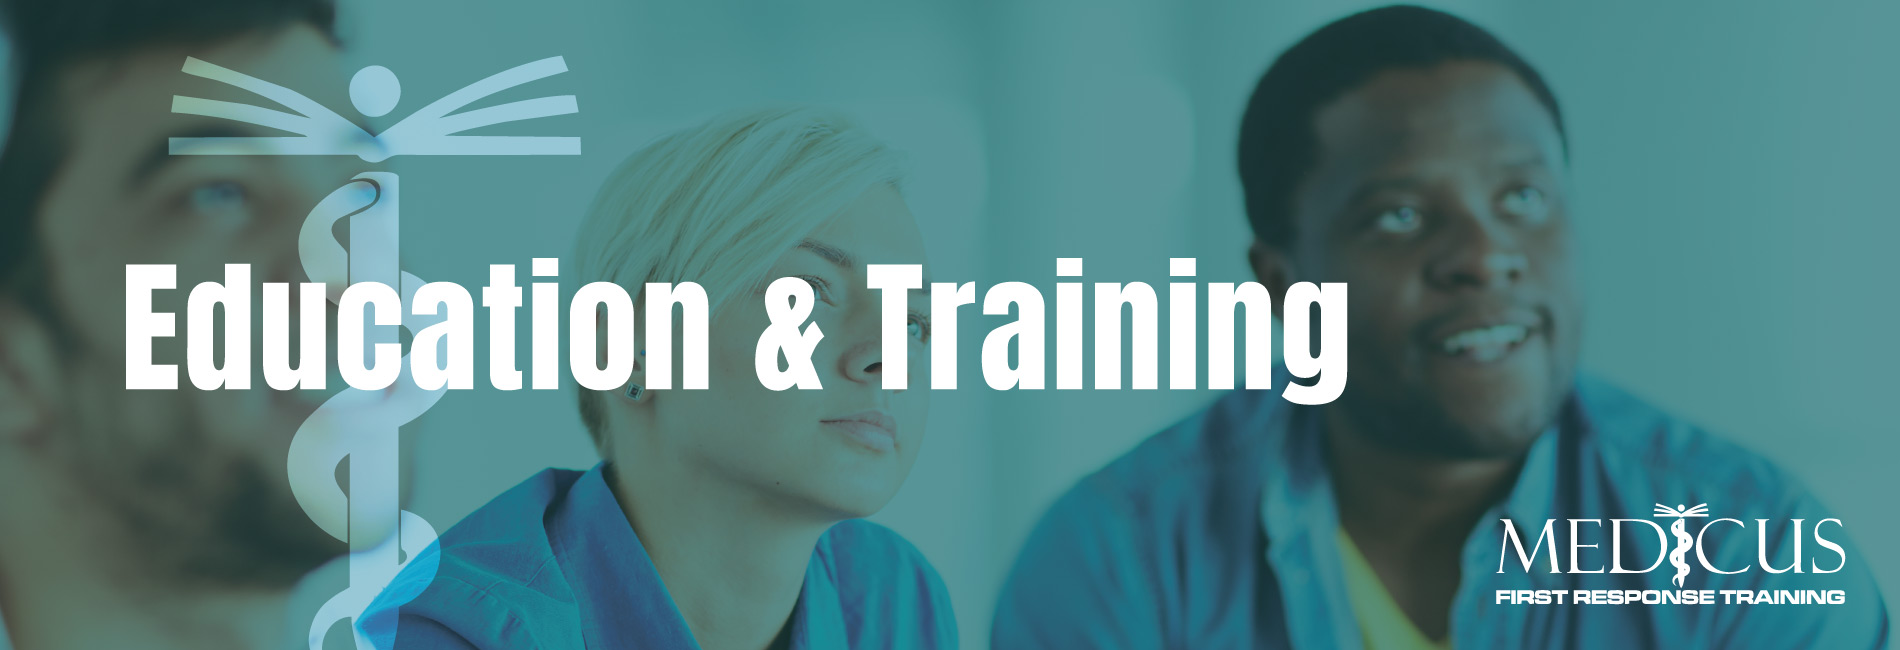 Medicus-Training-Carmarthen-Services-Education-and-Training